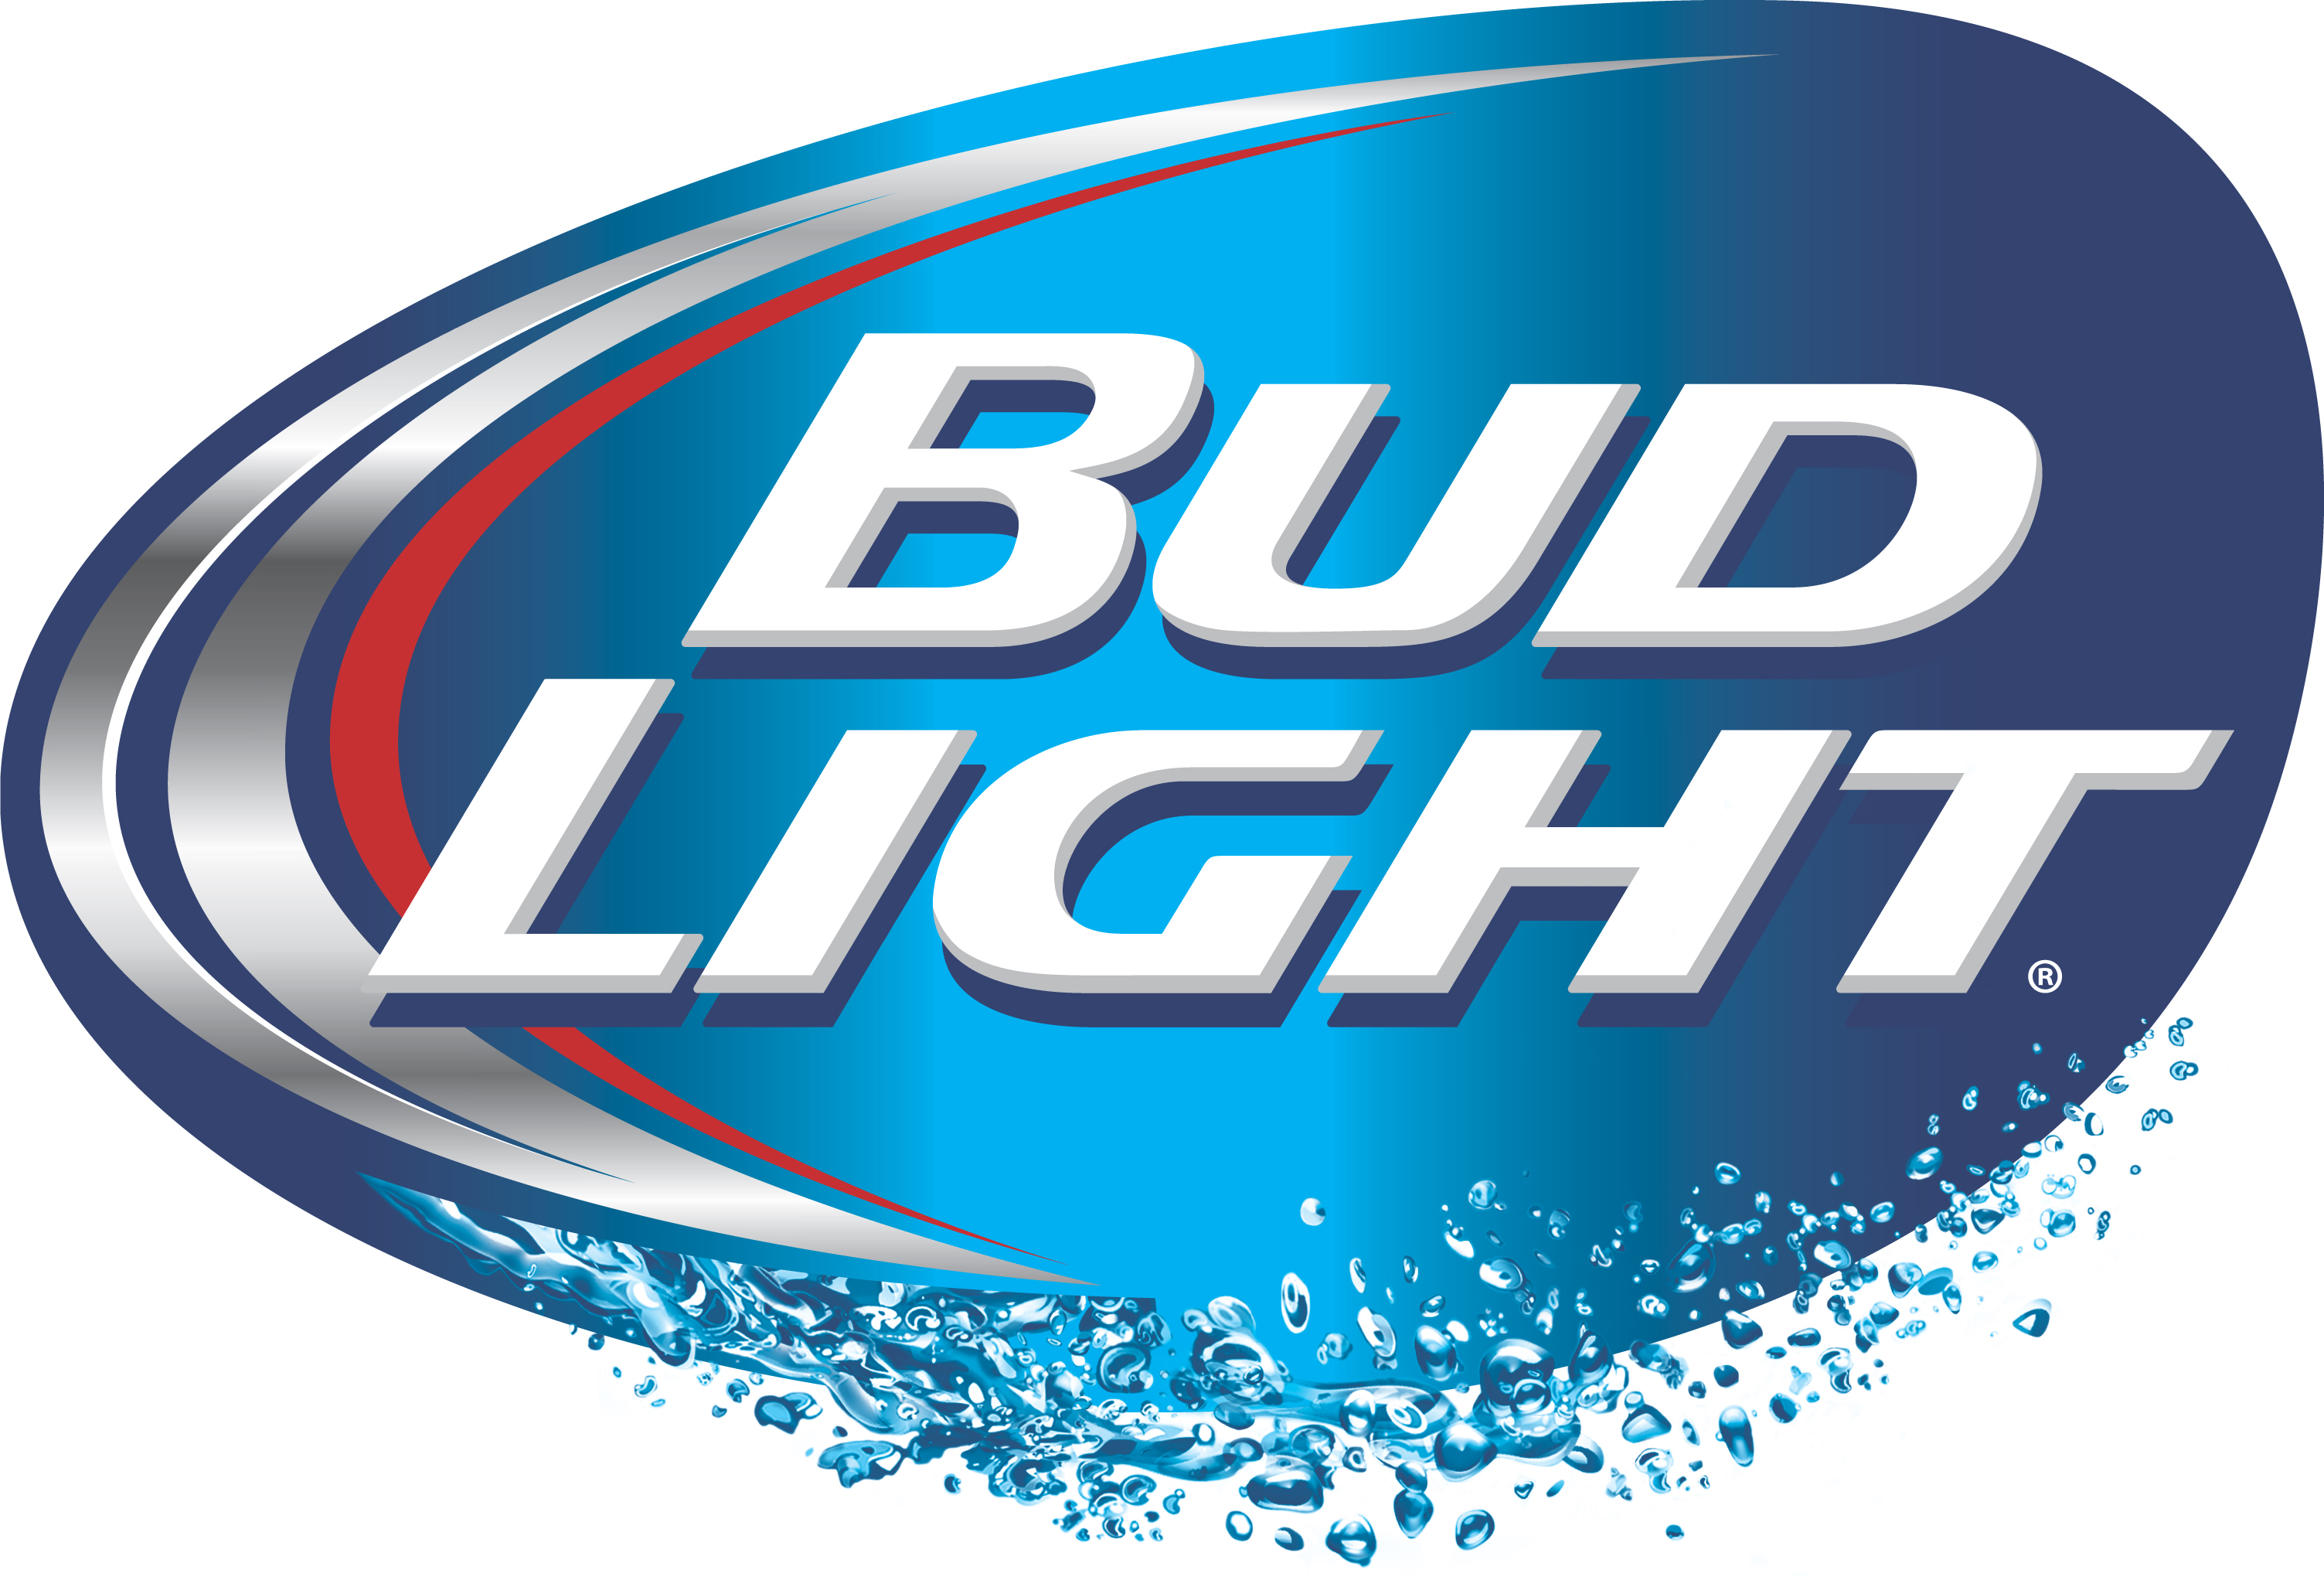 Open casting call for bud light commercial 8500 the casting open casting call for bud light commercial 8500 the casting experts l biggest name in casting aloadofball Choice Image